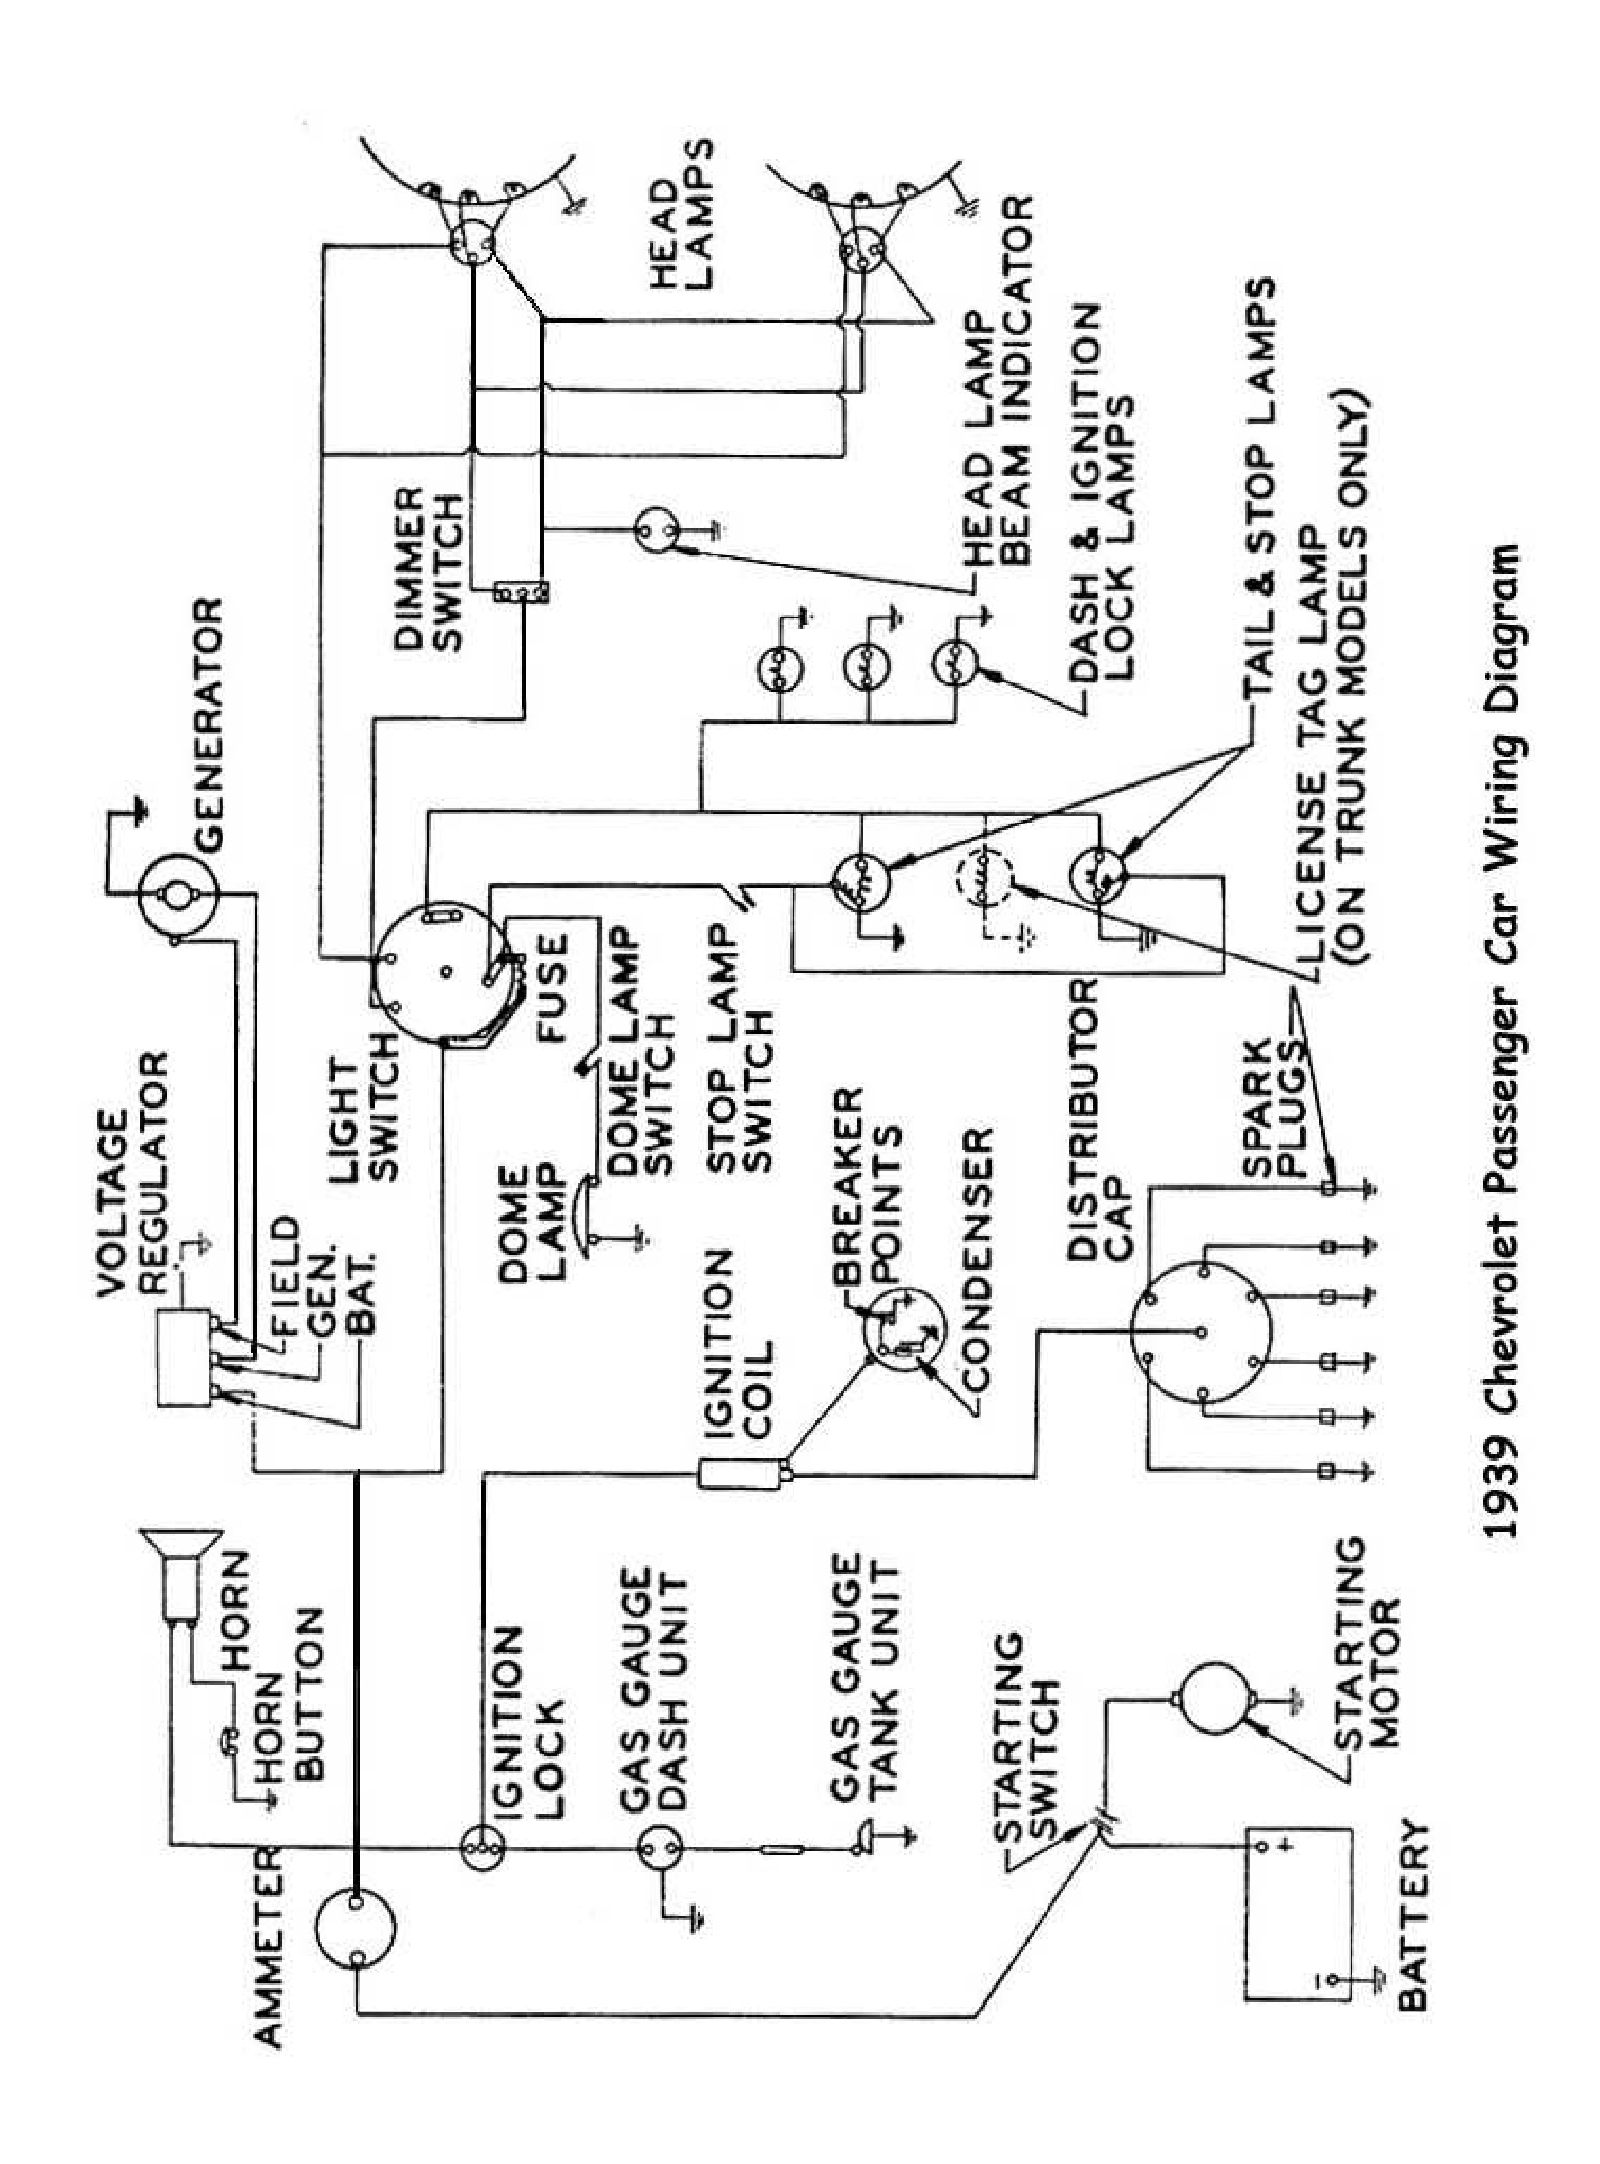 39car chevy wiring diagrams 89 chevy truck ignition switch wiring diagram at virtualis.co